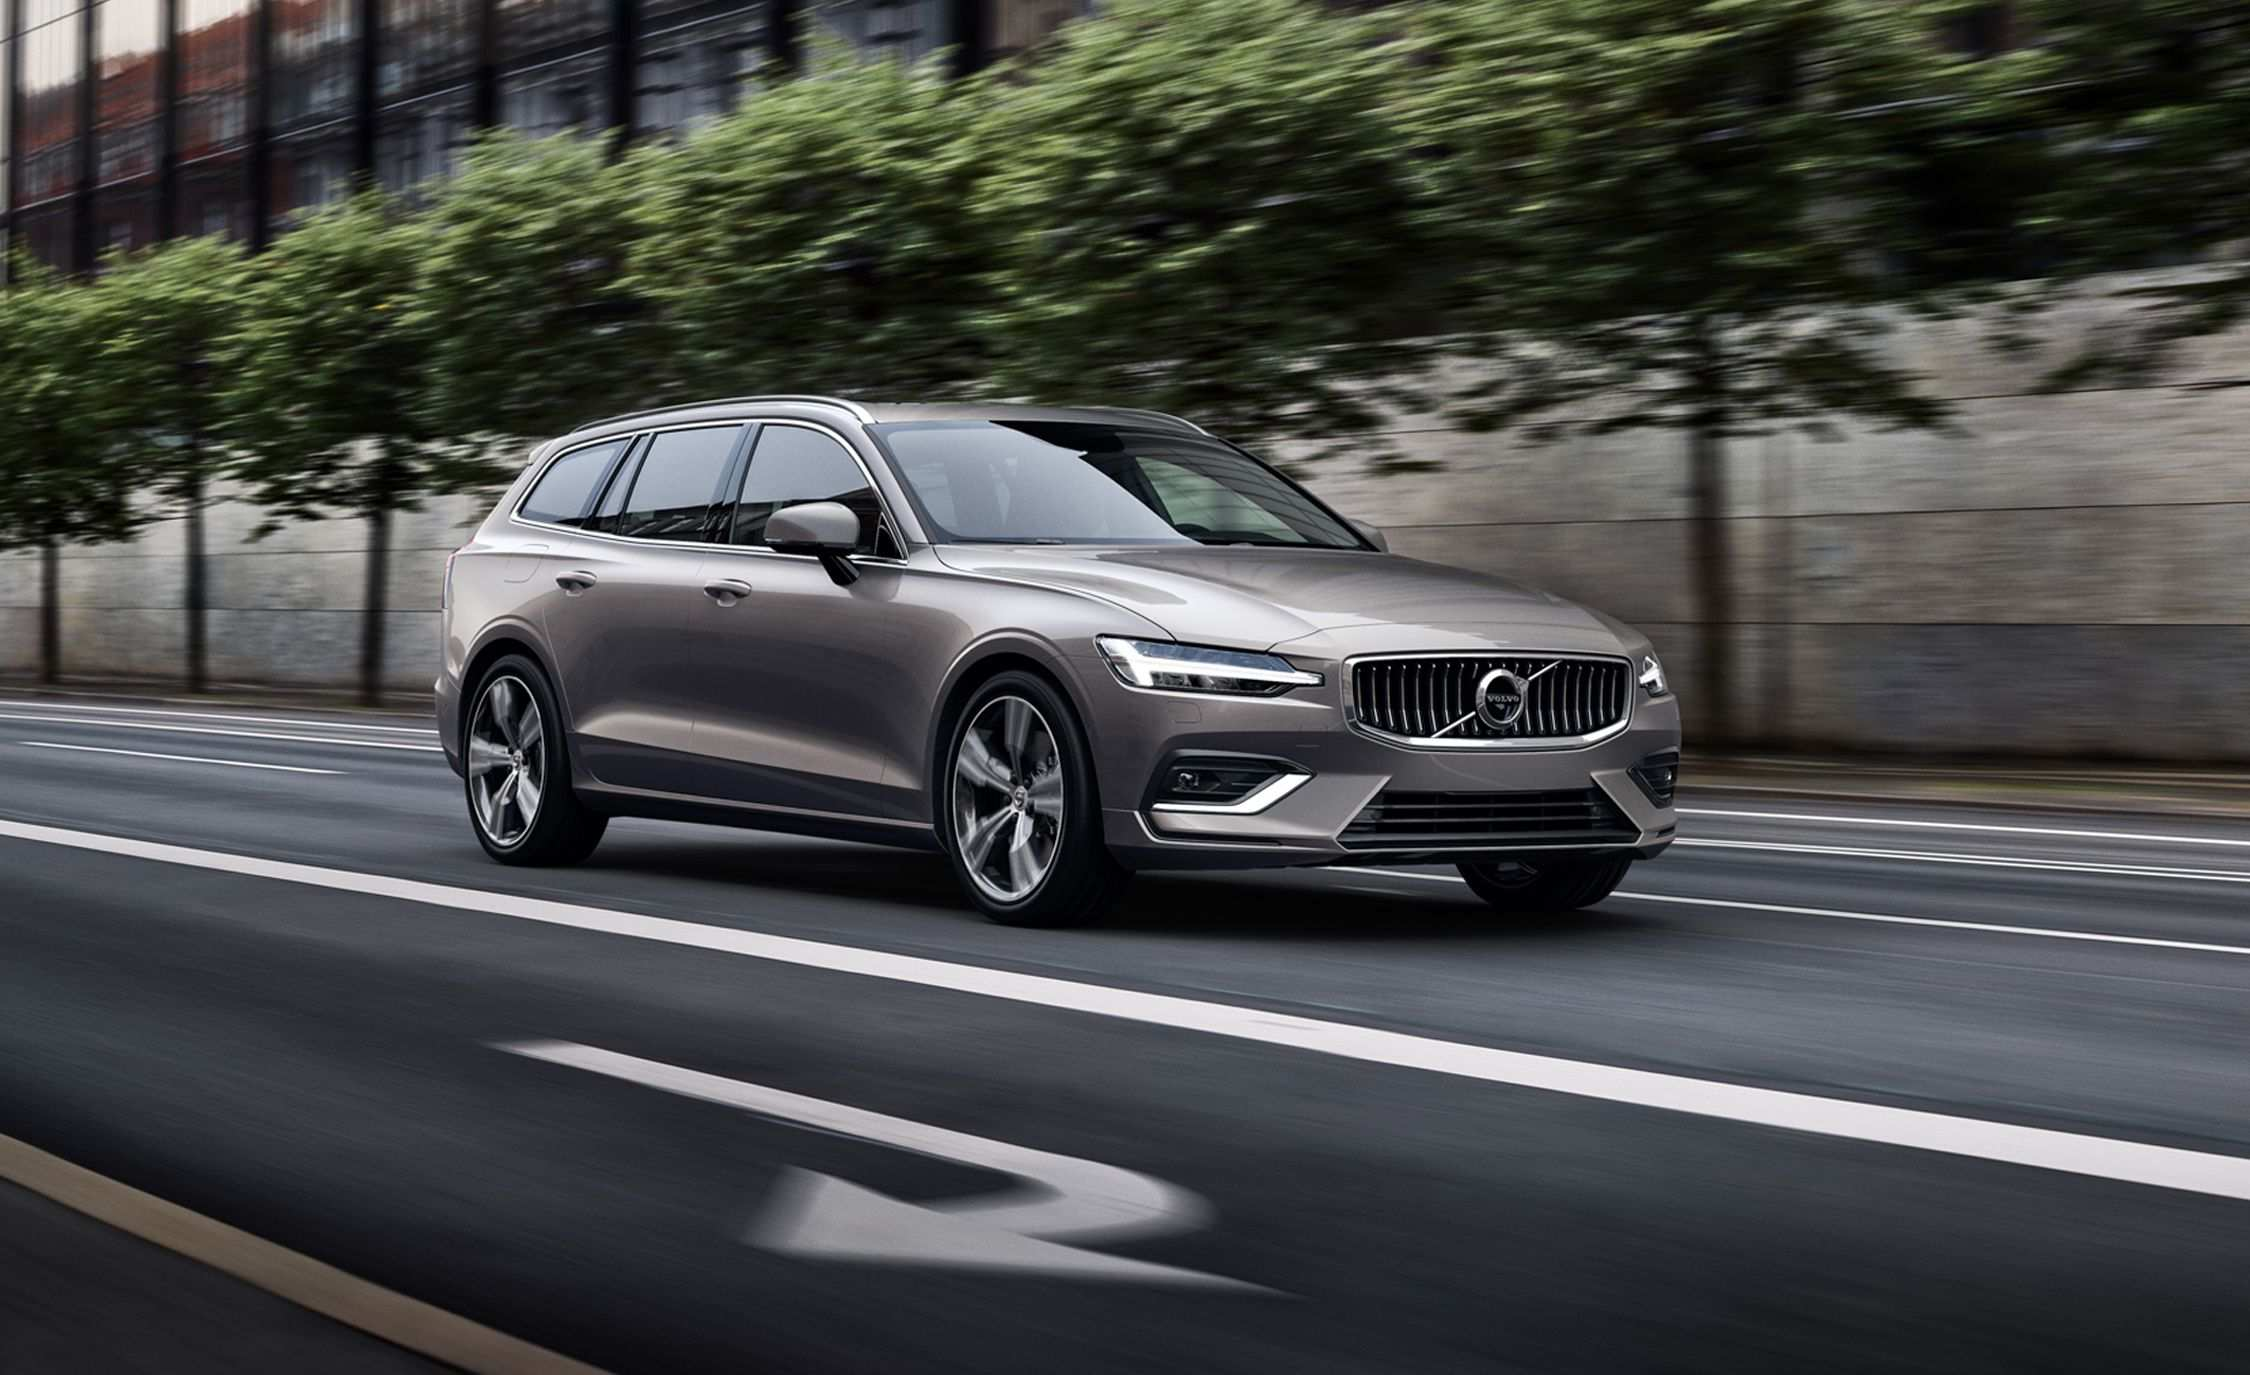 83 Gallery of New 2019 Volvo V60 Exterior and Interior with New 2019 Volvo V60